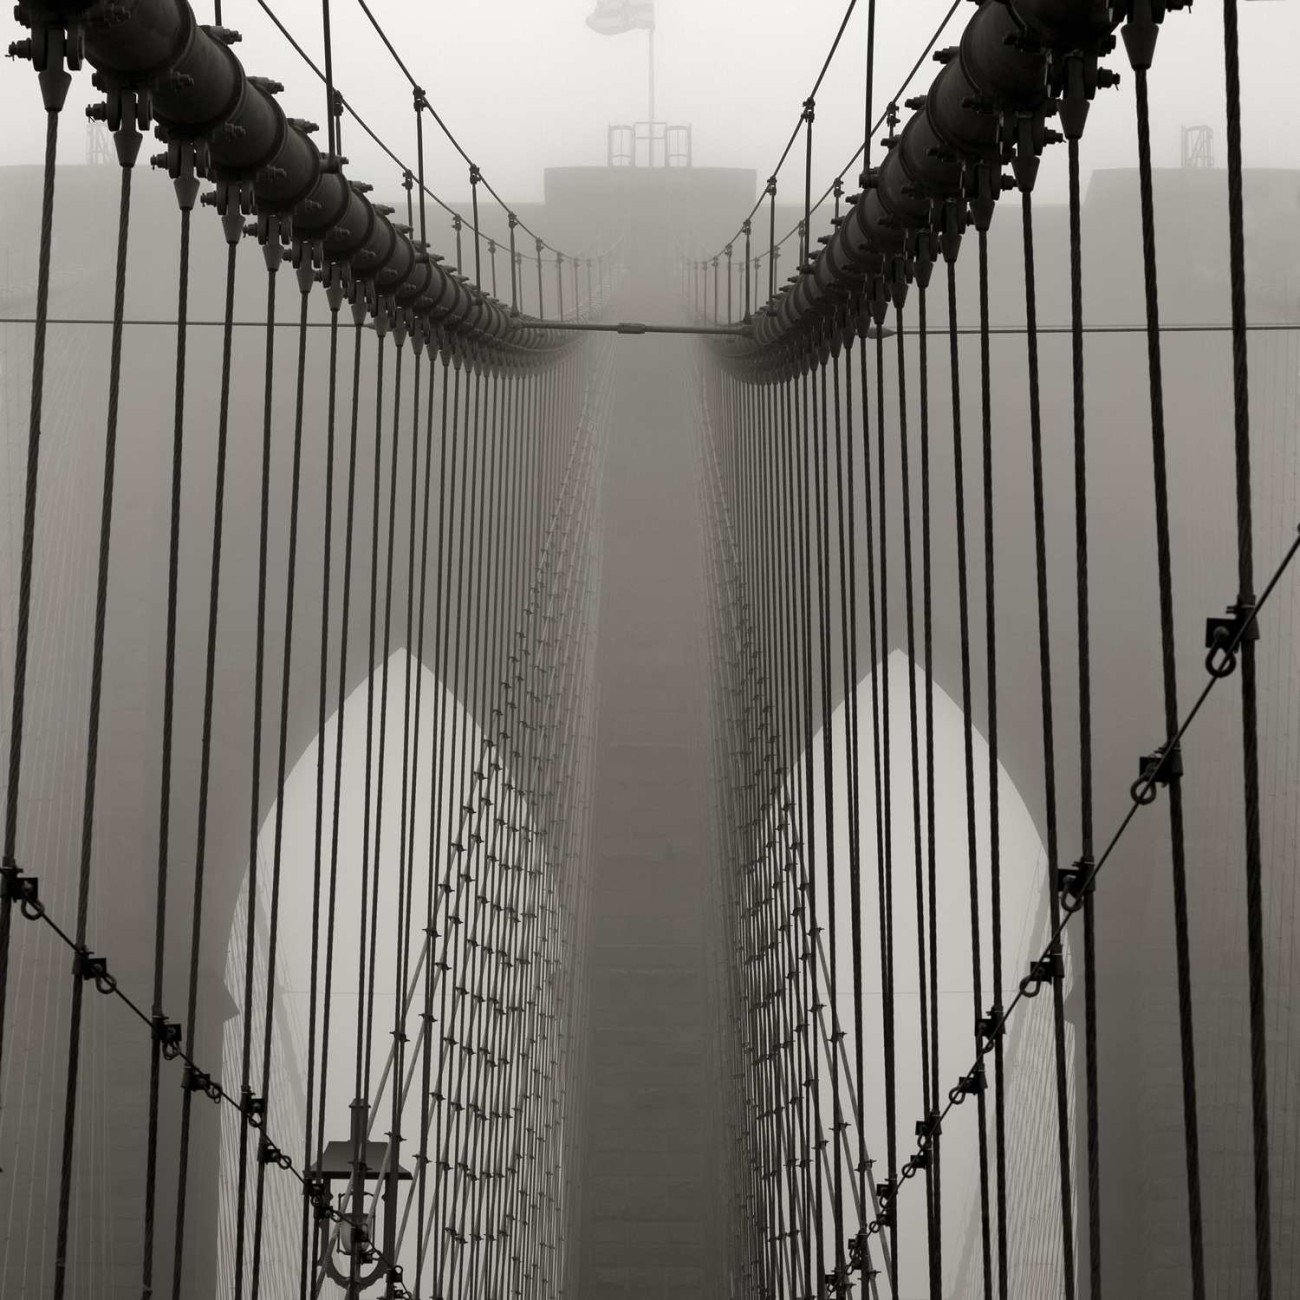 Brooklyn Bridge in fog, study 4, NY, 2014